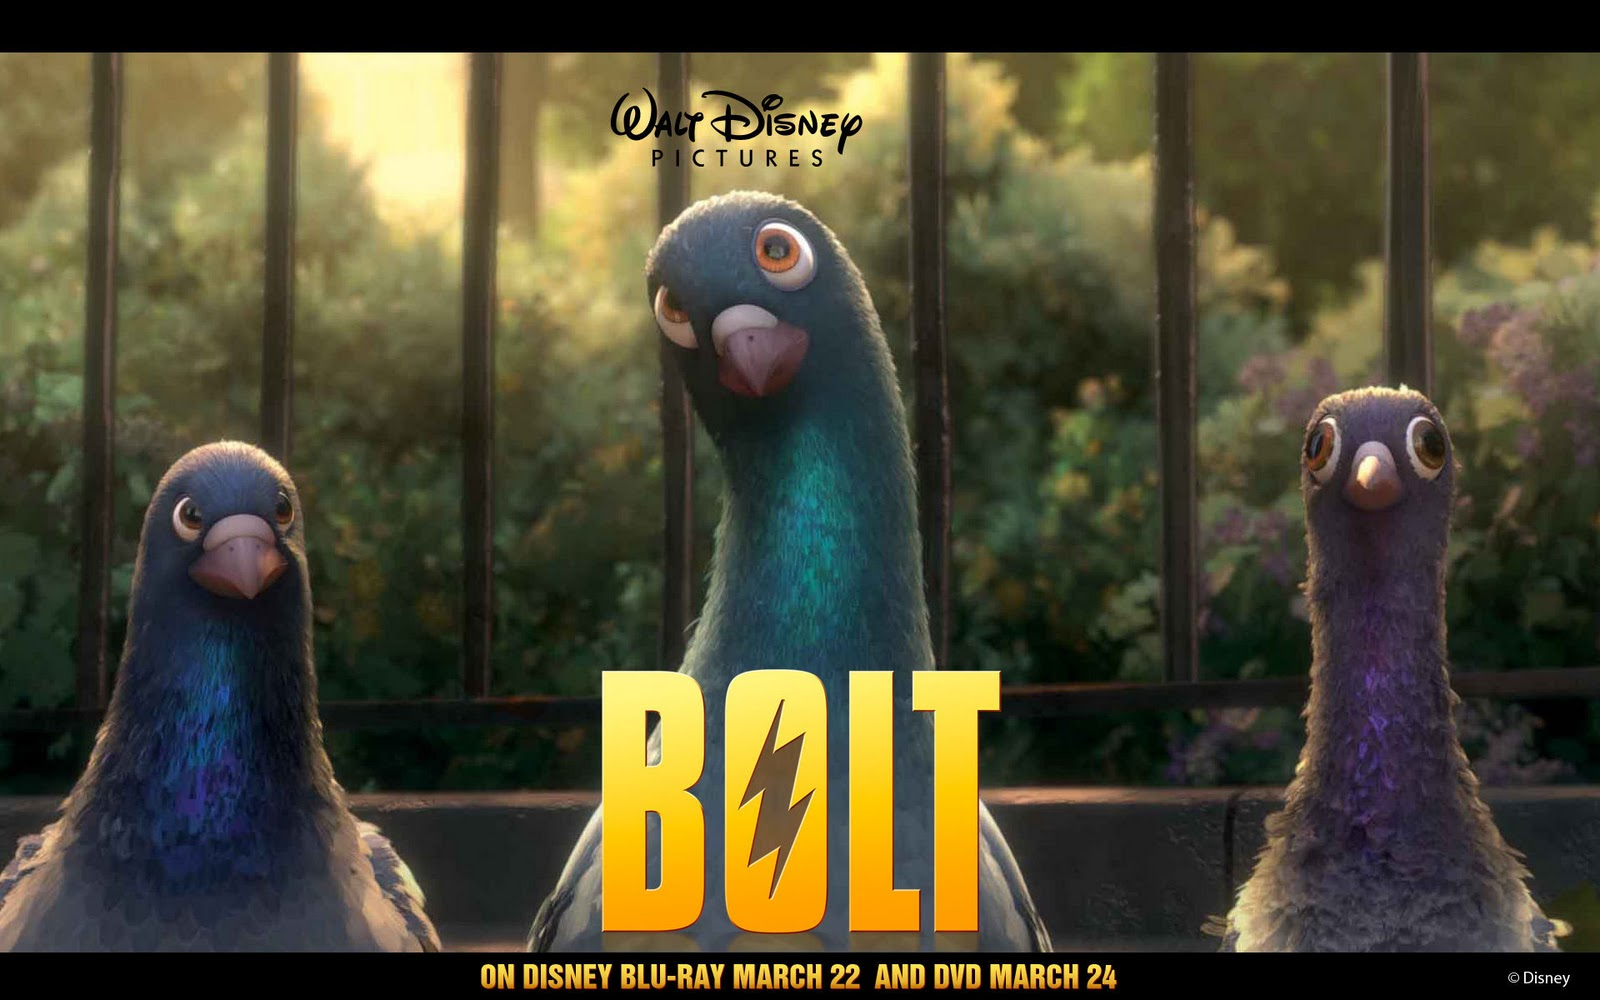 New Ram Truck >> CARTOONS: Bolt movie posters and wallpaper